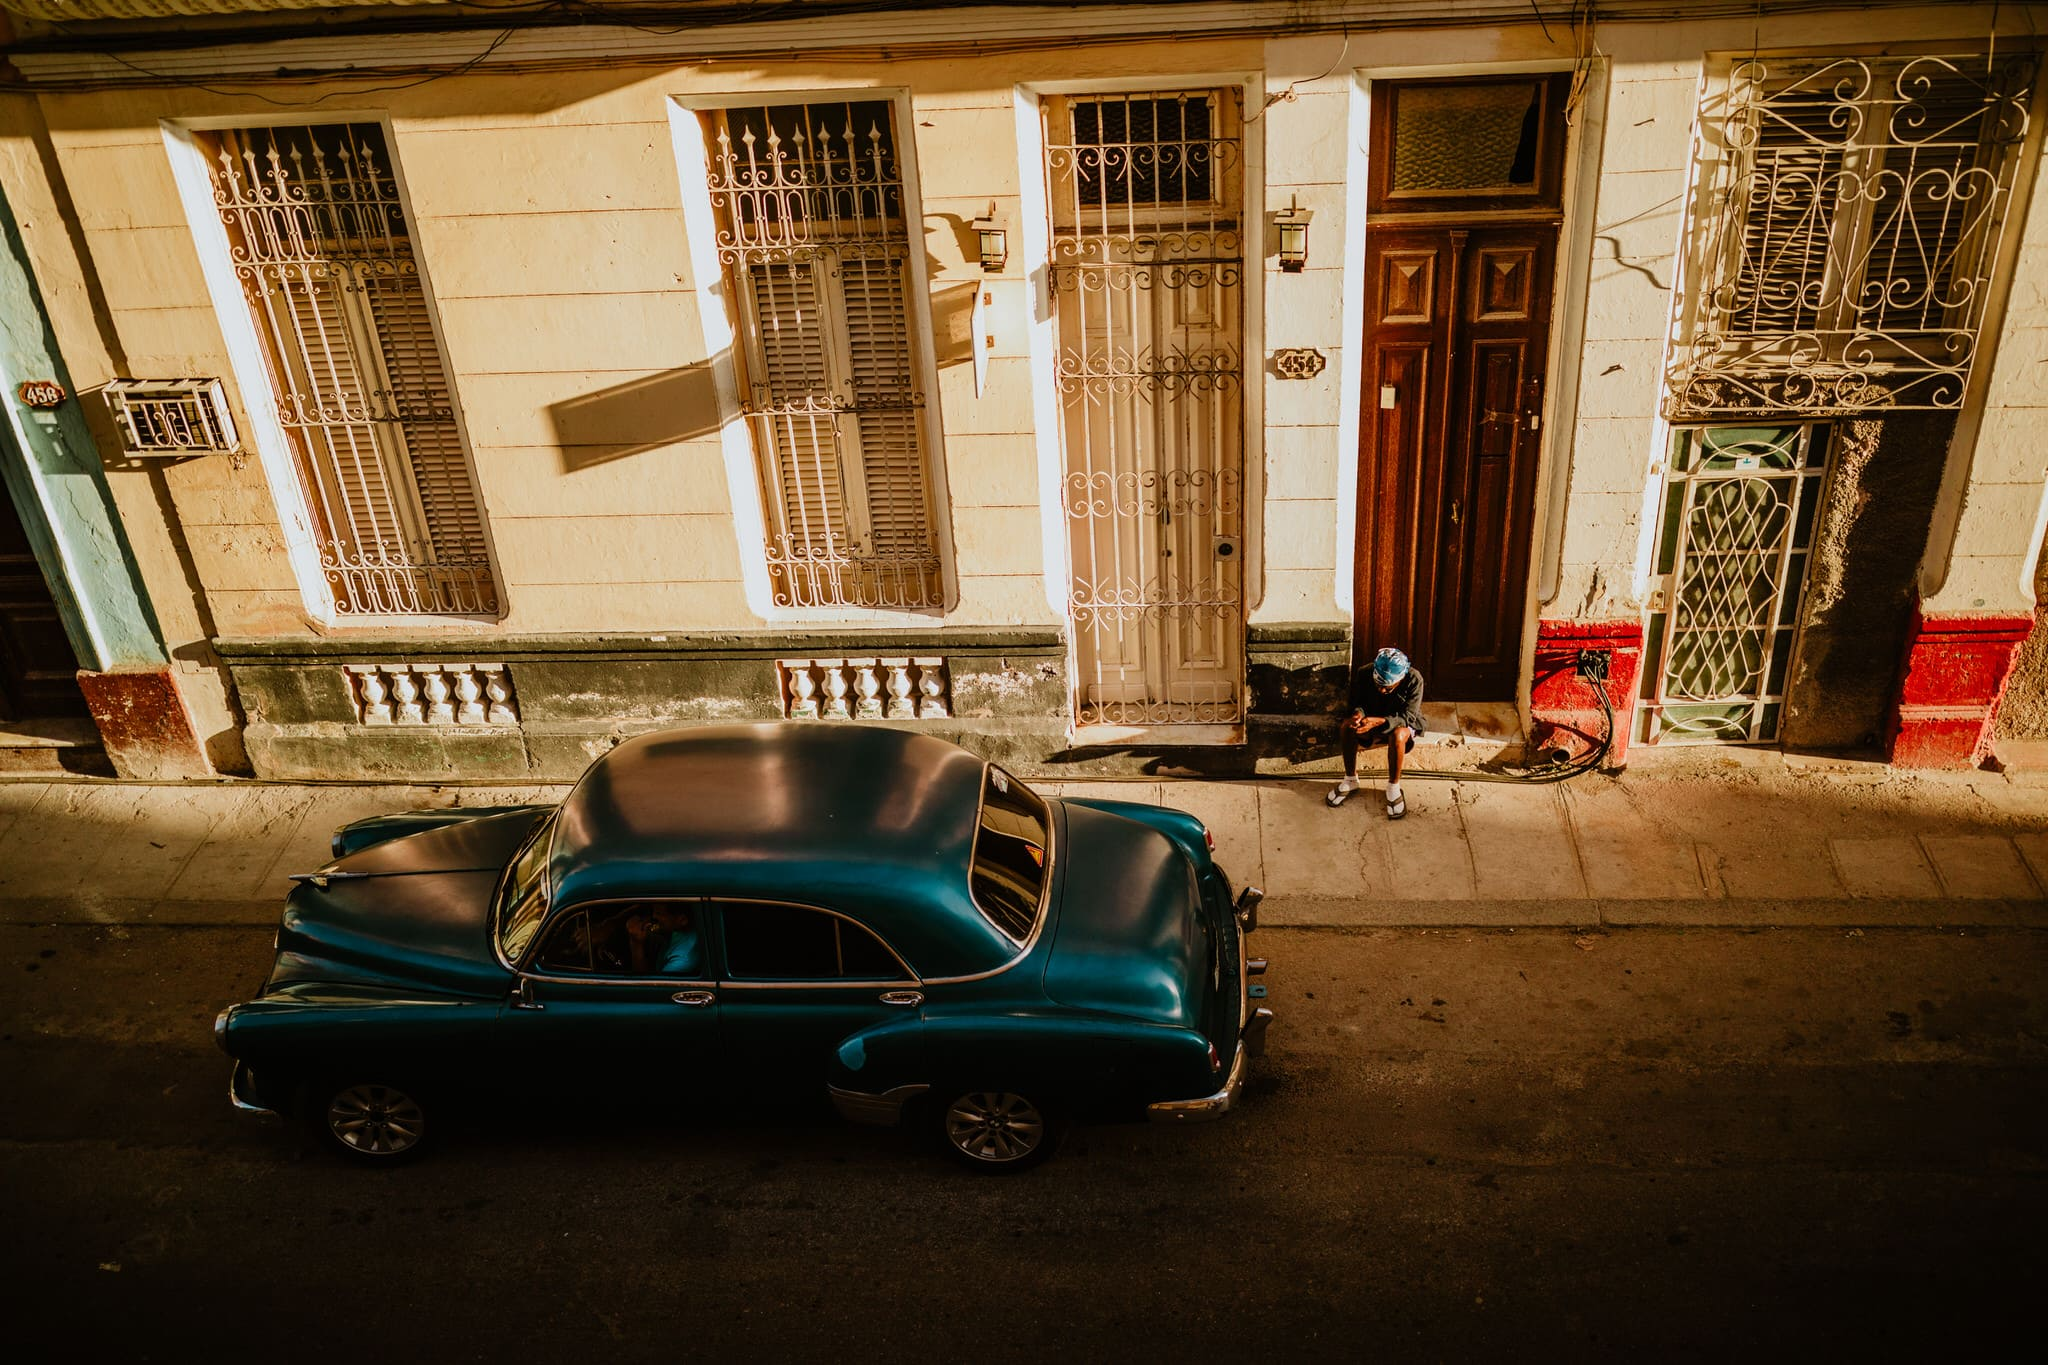 A classic teal Chevrolet at sunset, one of the classic cars of cuba, near the Malecon in Havana. Travel photographer Brent Calis.